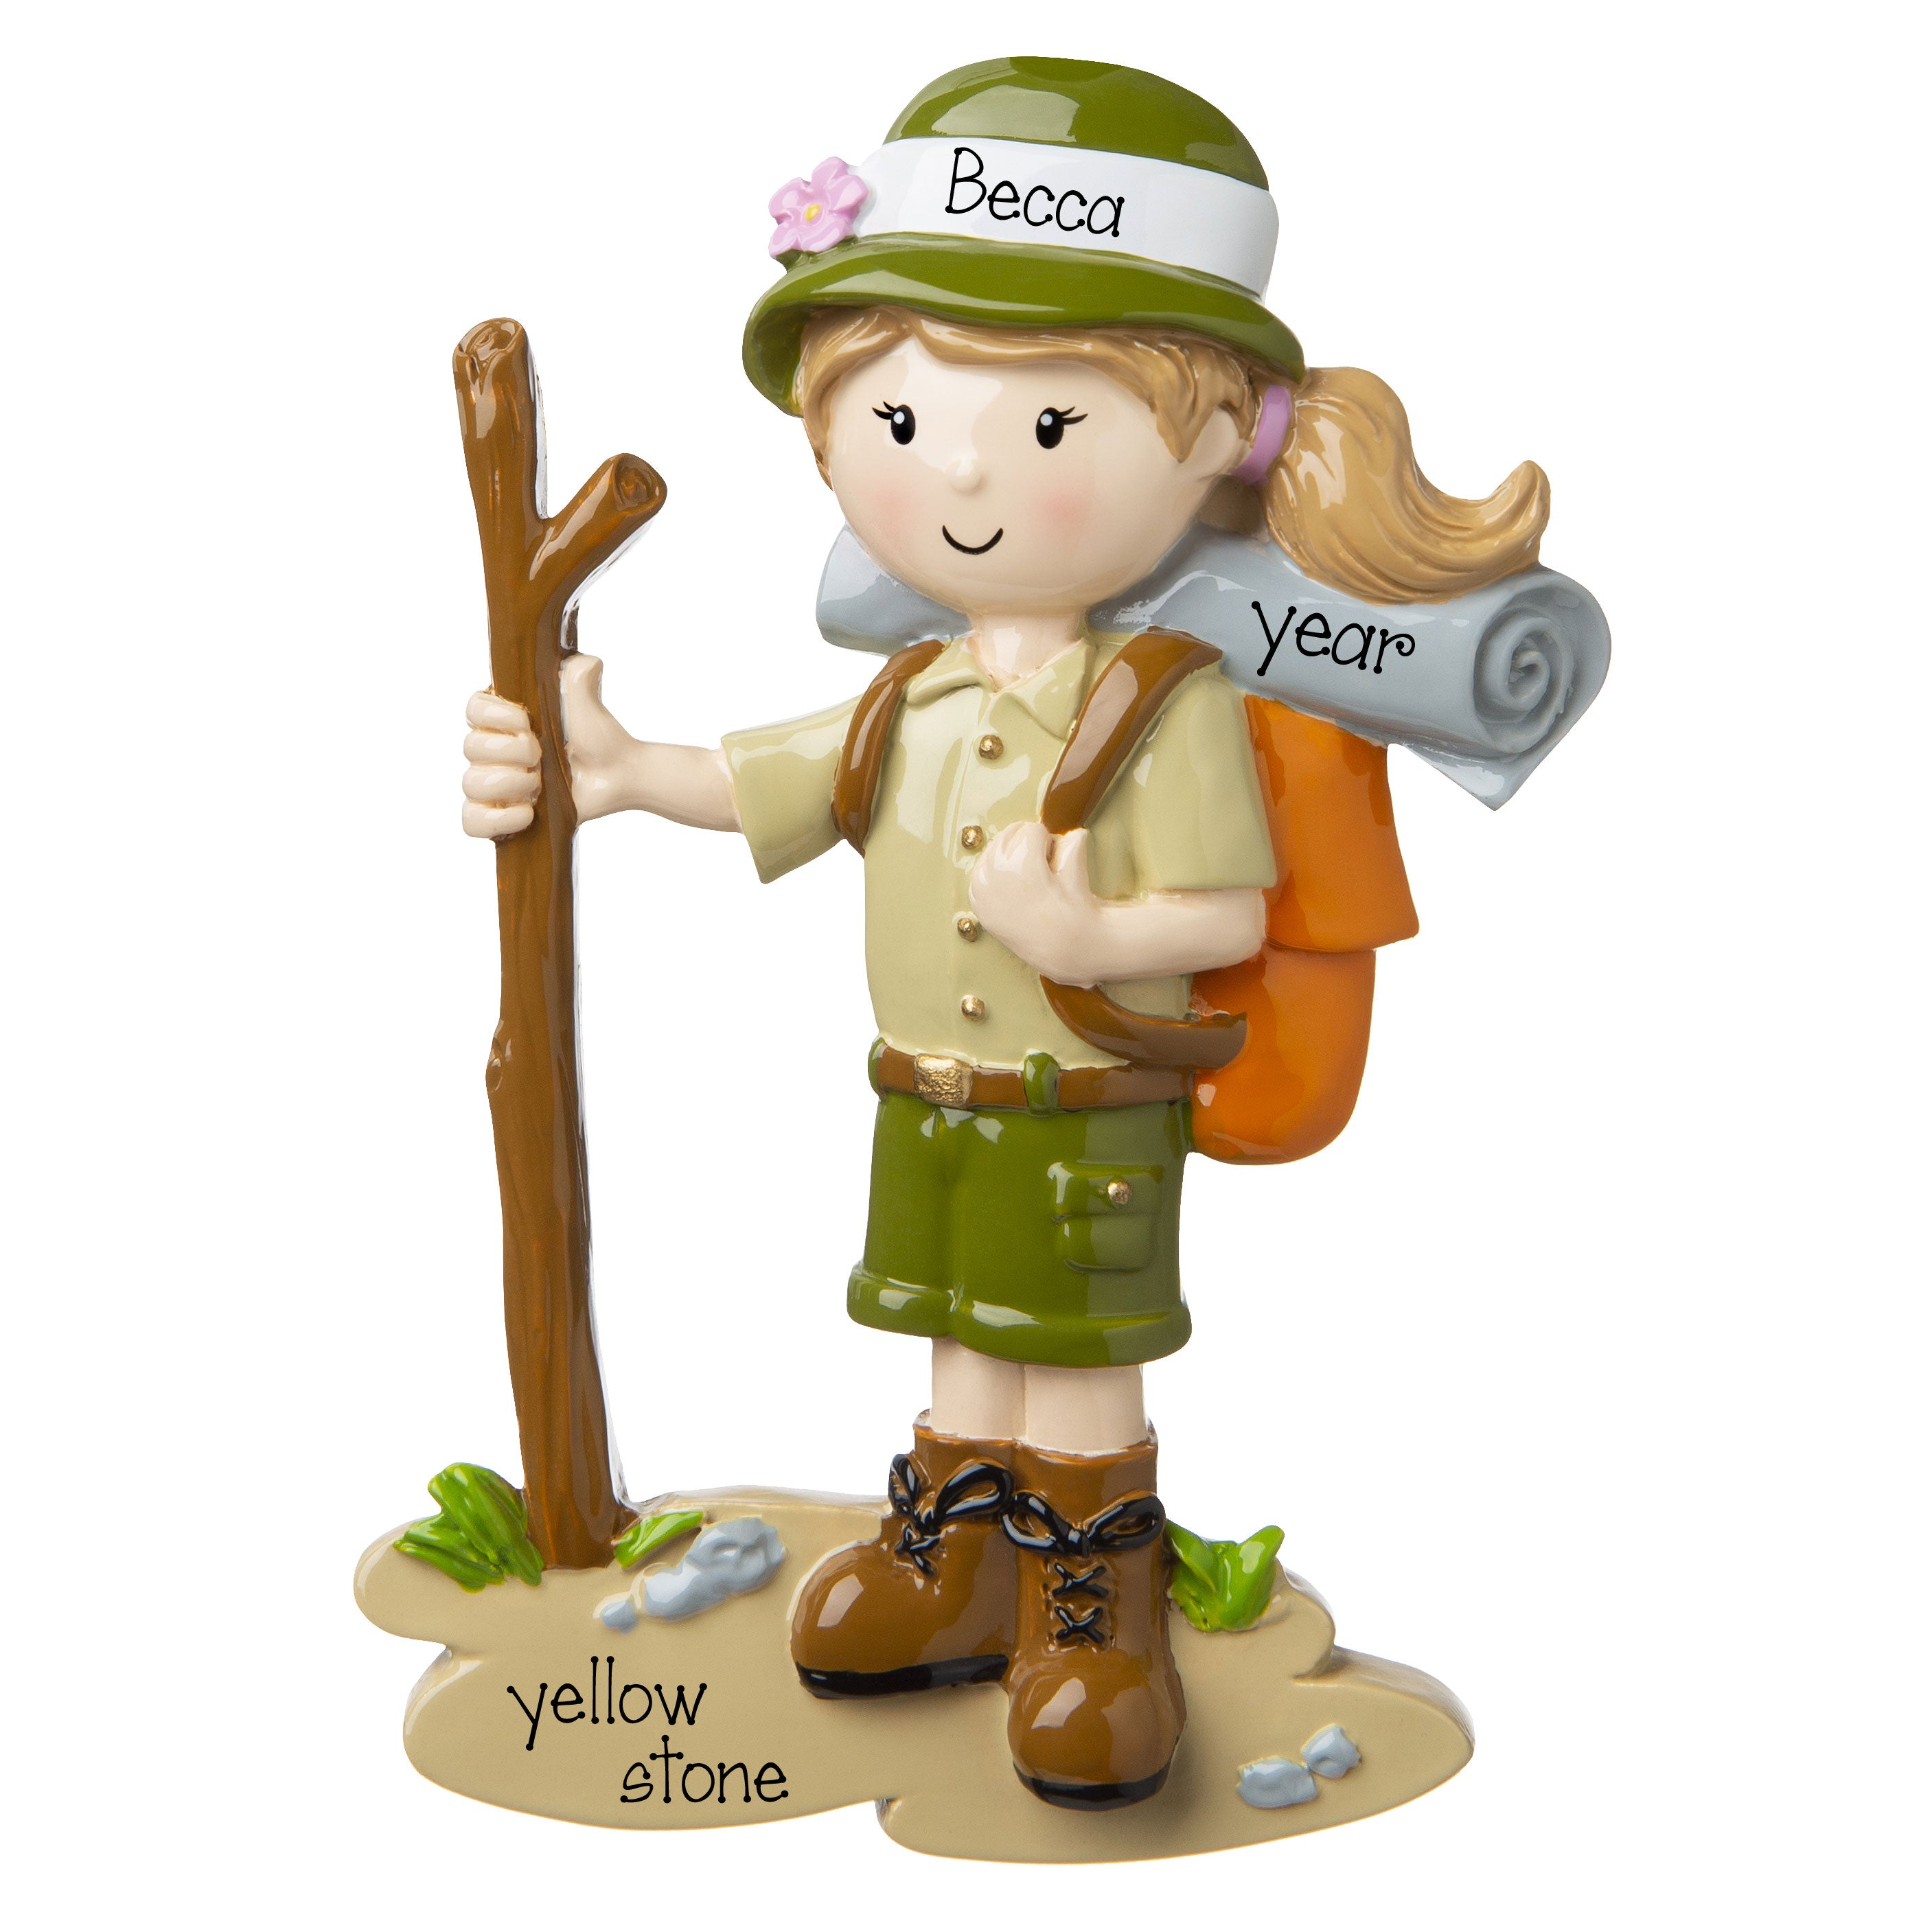 FeMale Hiker with stick in hand personalized ornament